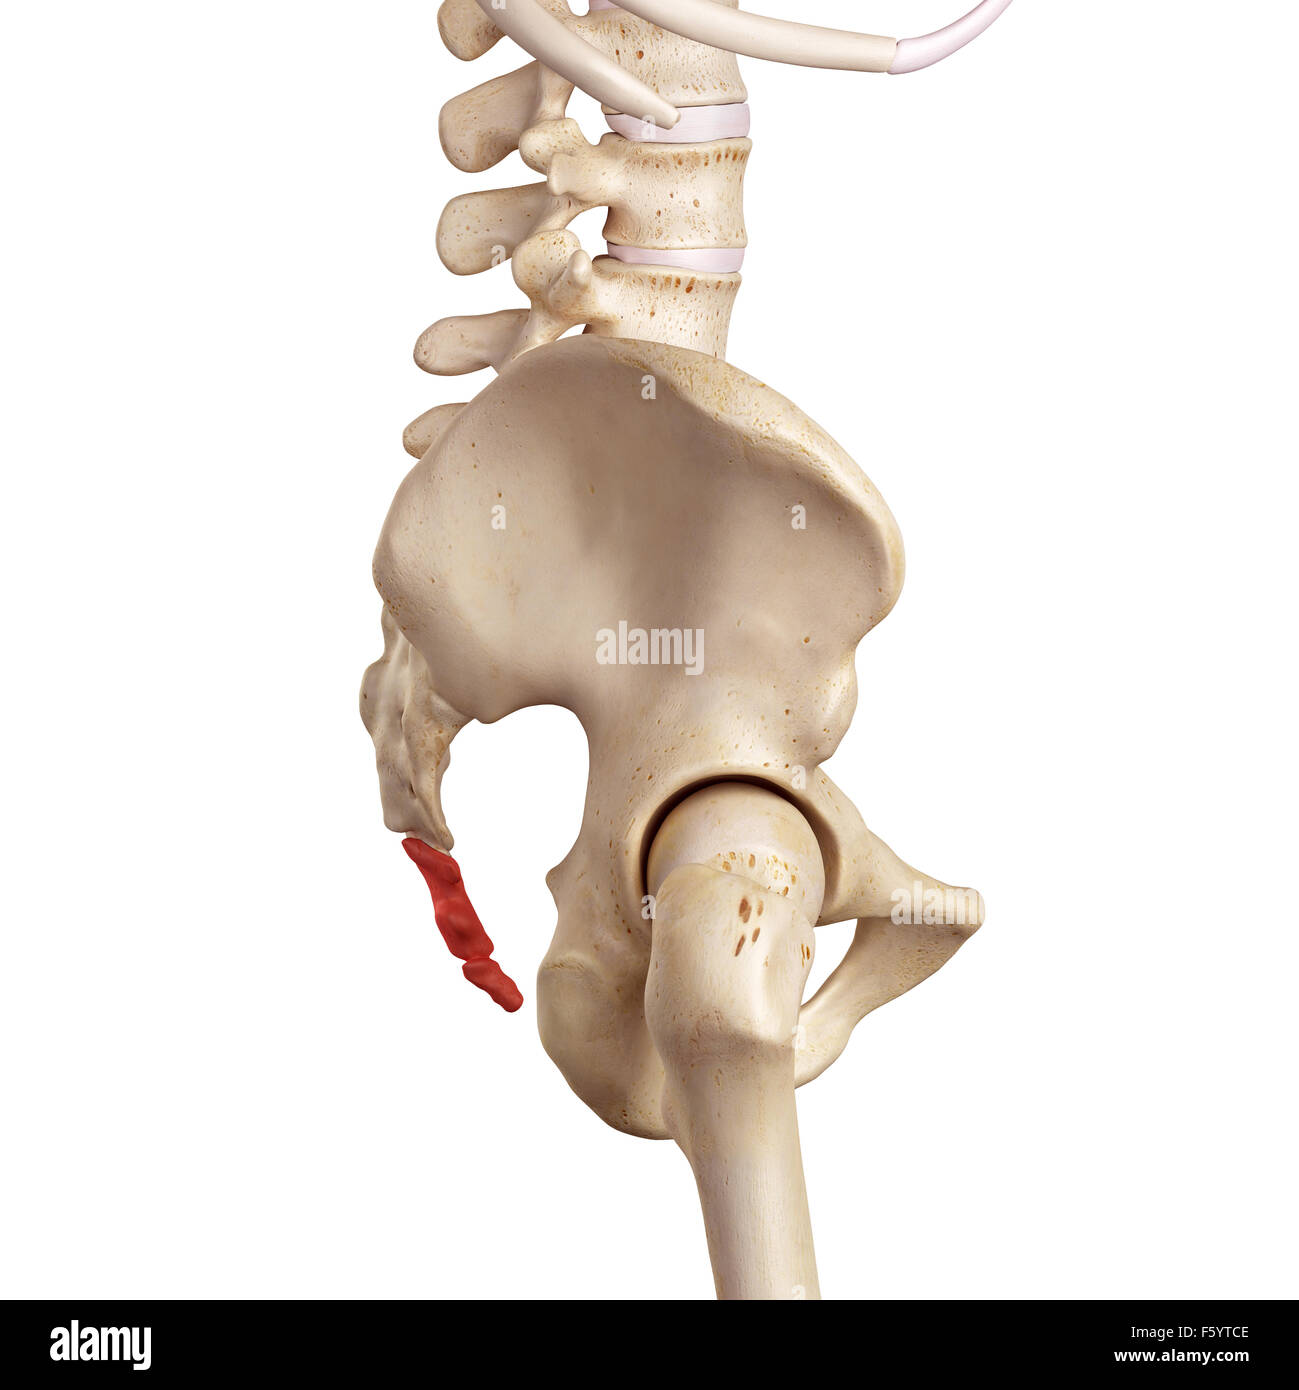 medical accurate illustration of the cocycx - Stock Image